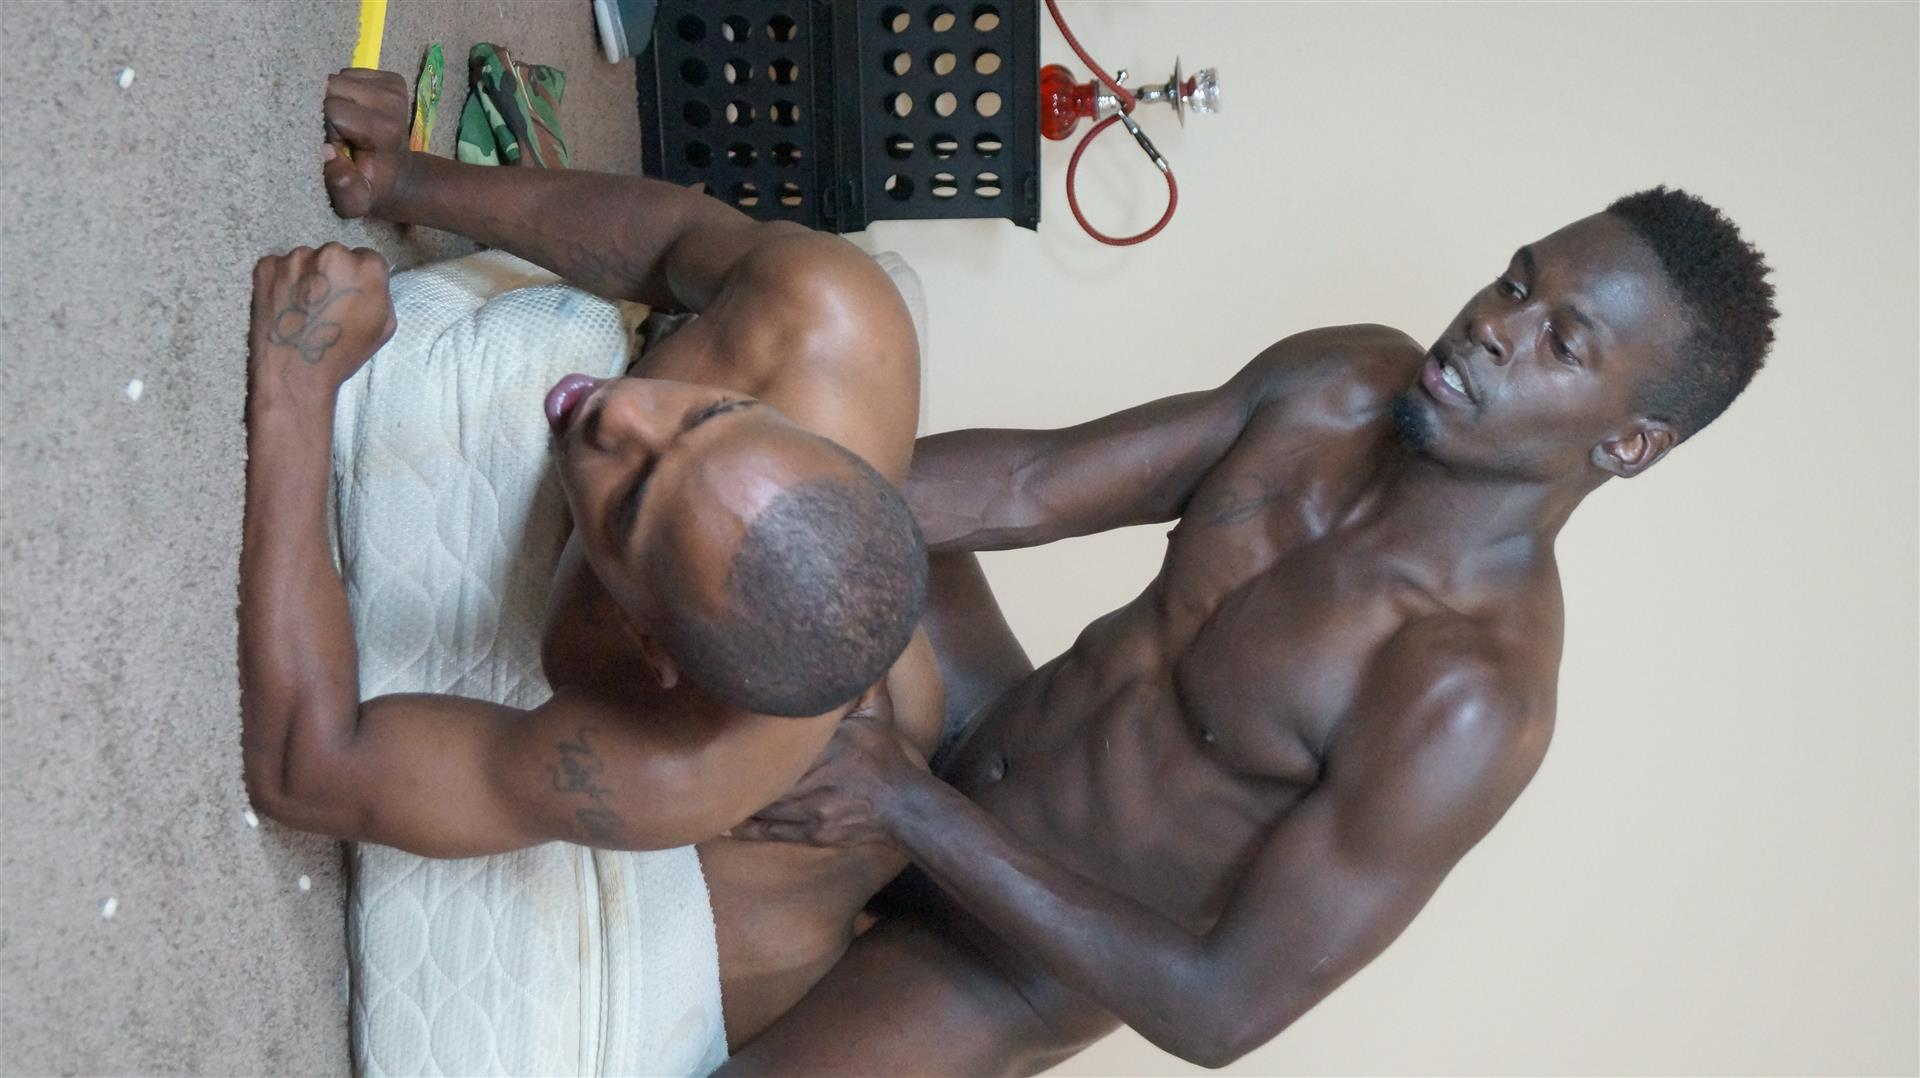 Trap-House-Boys-Ozzy-and-Dagger-Bareback-Thug-Porn-Amateur-Gay-Porn-08 Hardcore Thug Barebacking With A Big Black Uncut Dick